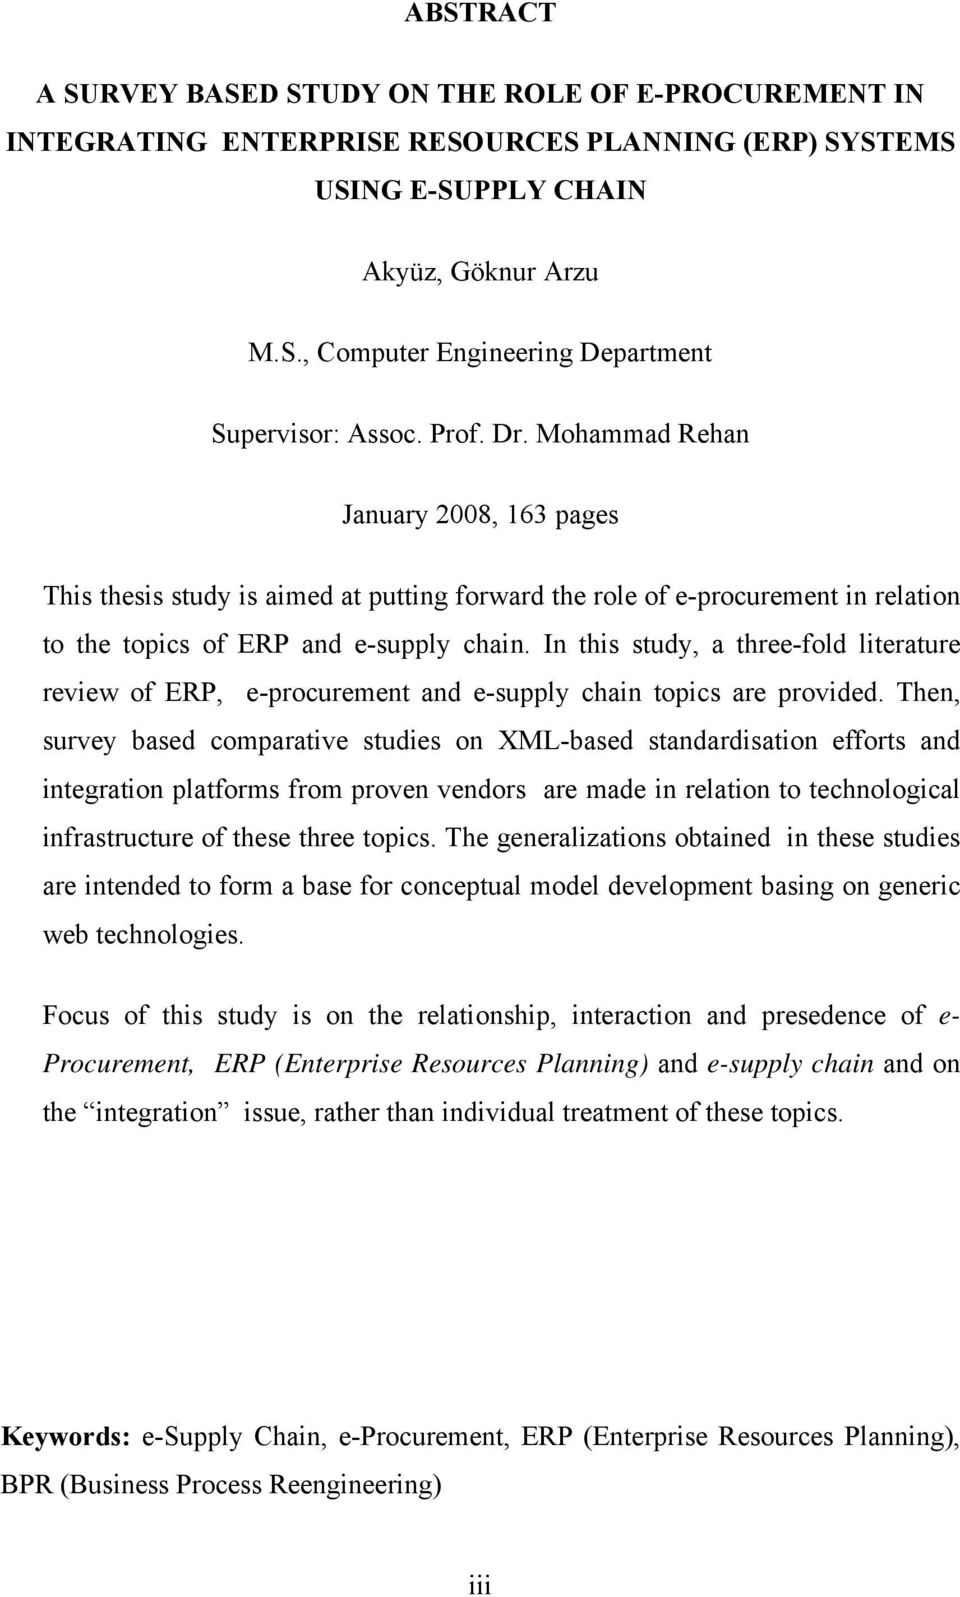 In this study, a three-fold literature review of ERP, e-procurement and e-supply chain topics are provided.